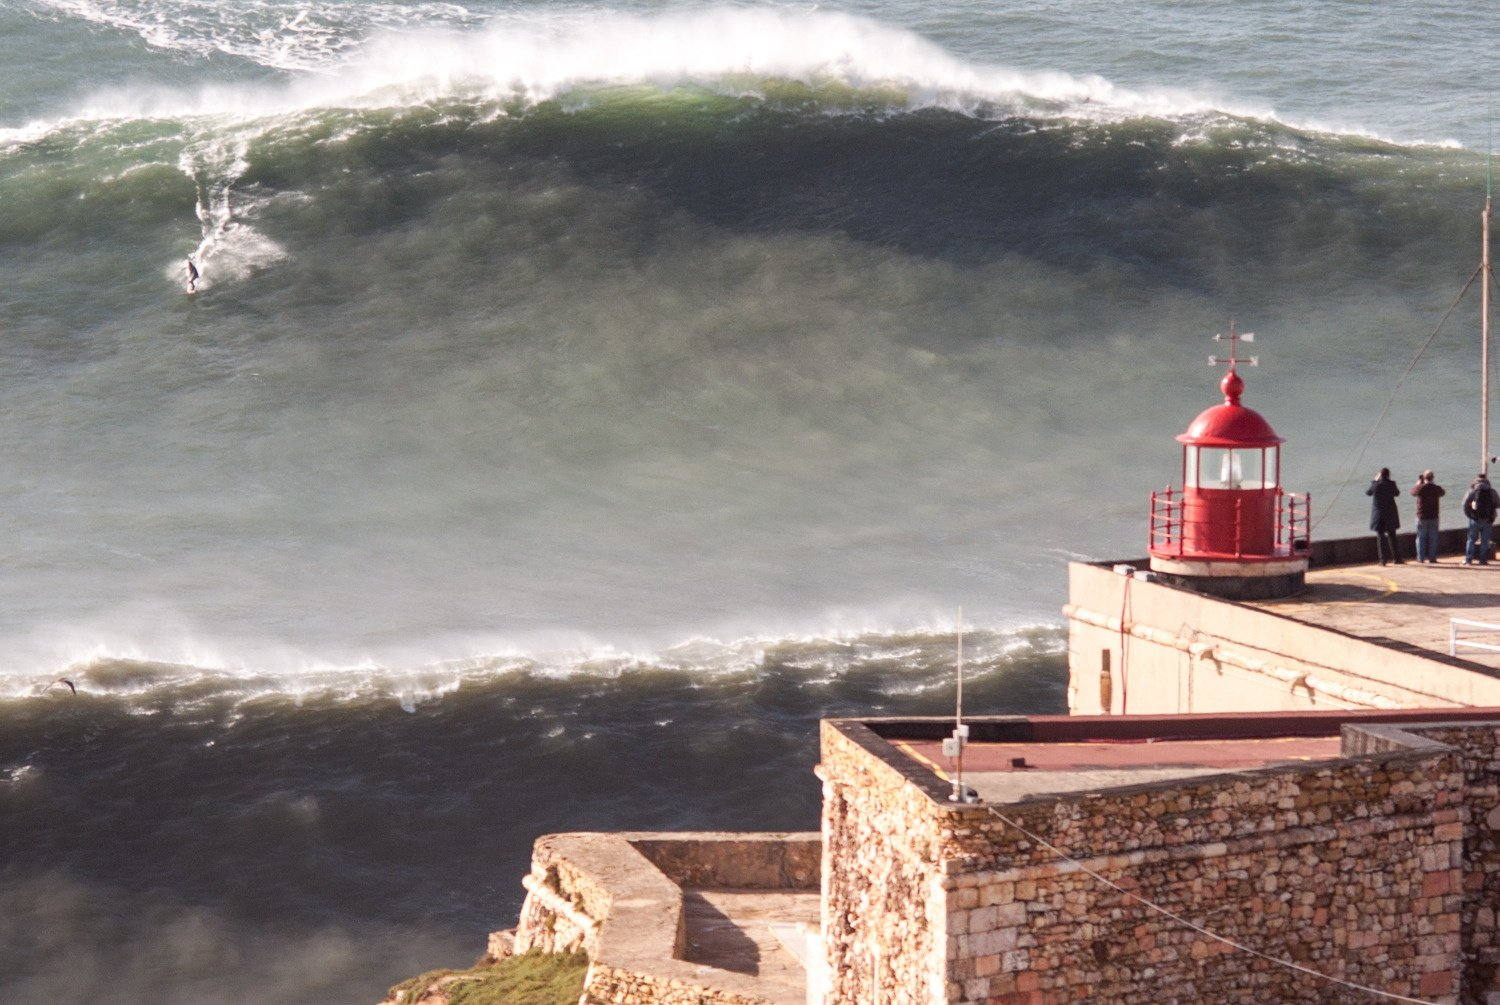 baleixo's photo of Nazaré